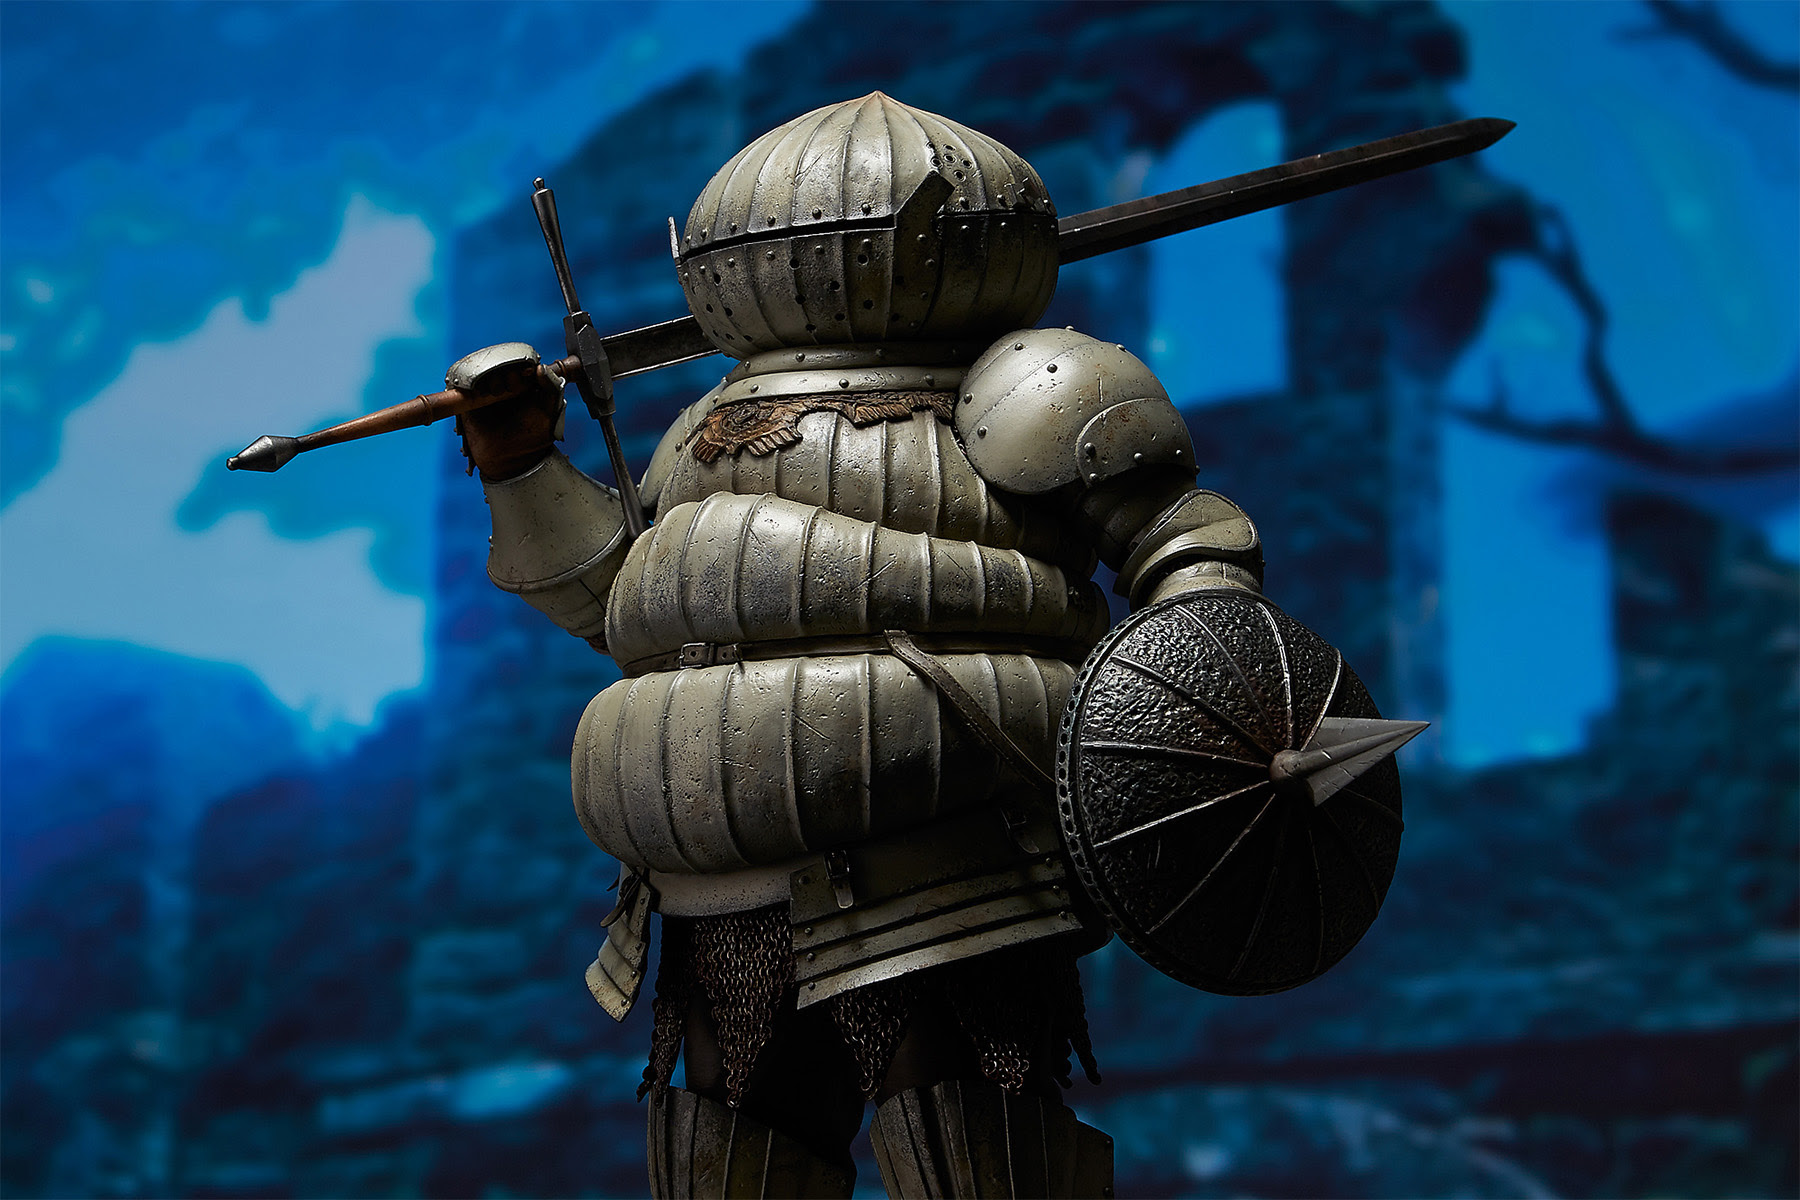 This Dark Souls figure is kind of cute screenshot